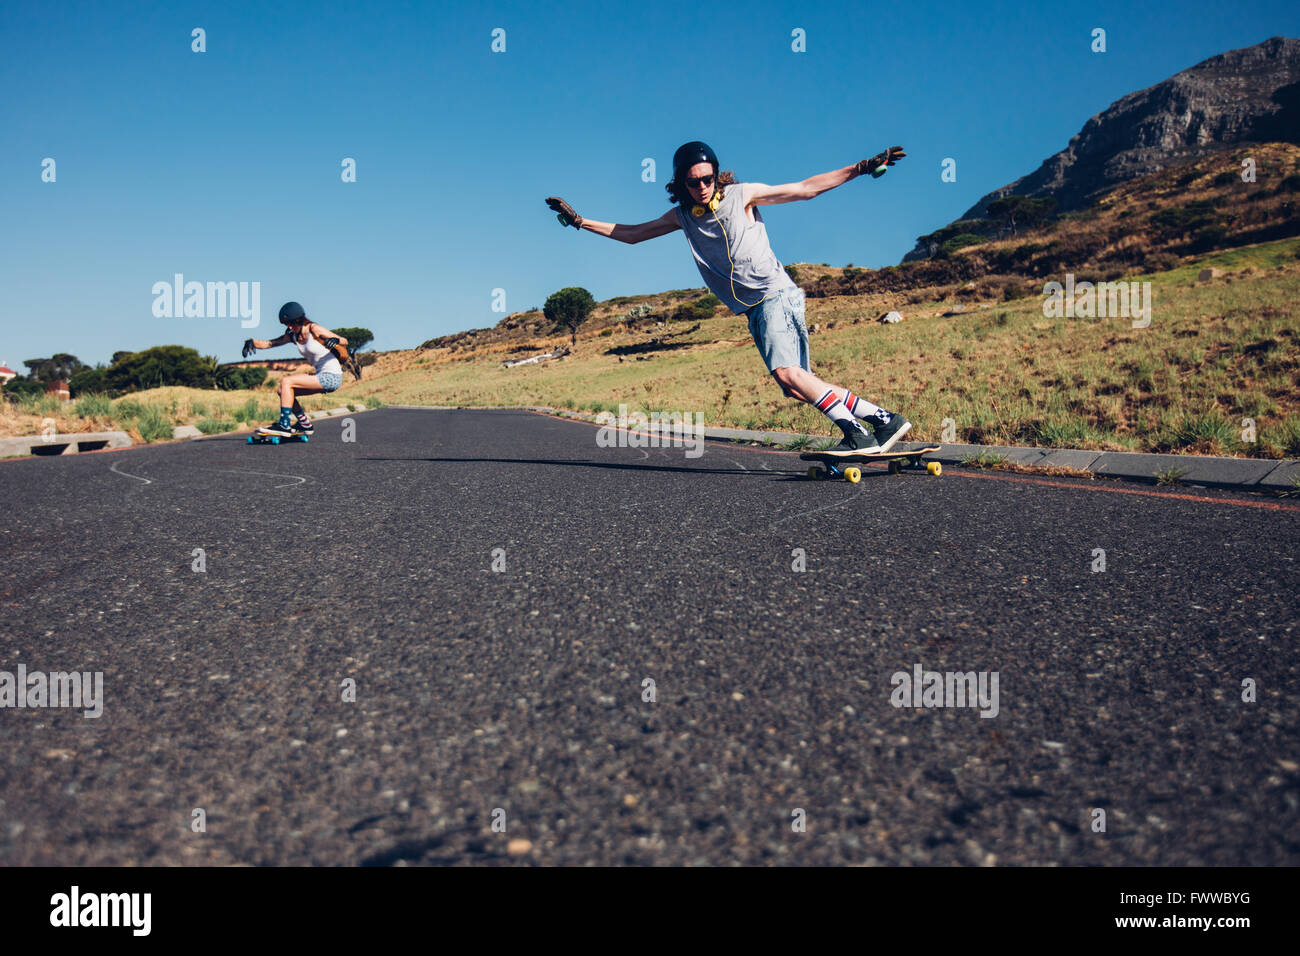 Young man and woman skateboarding on the rural road. Young couple enjoying skating on the road. - Stock Image